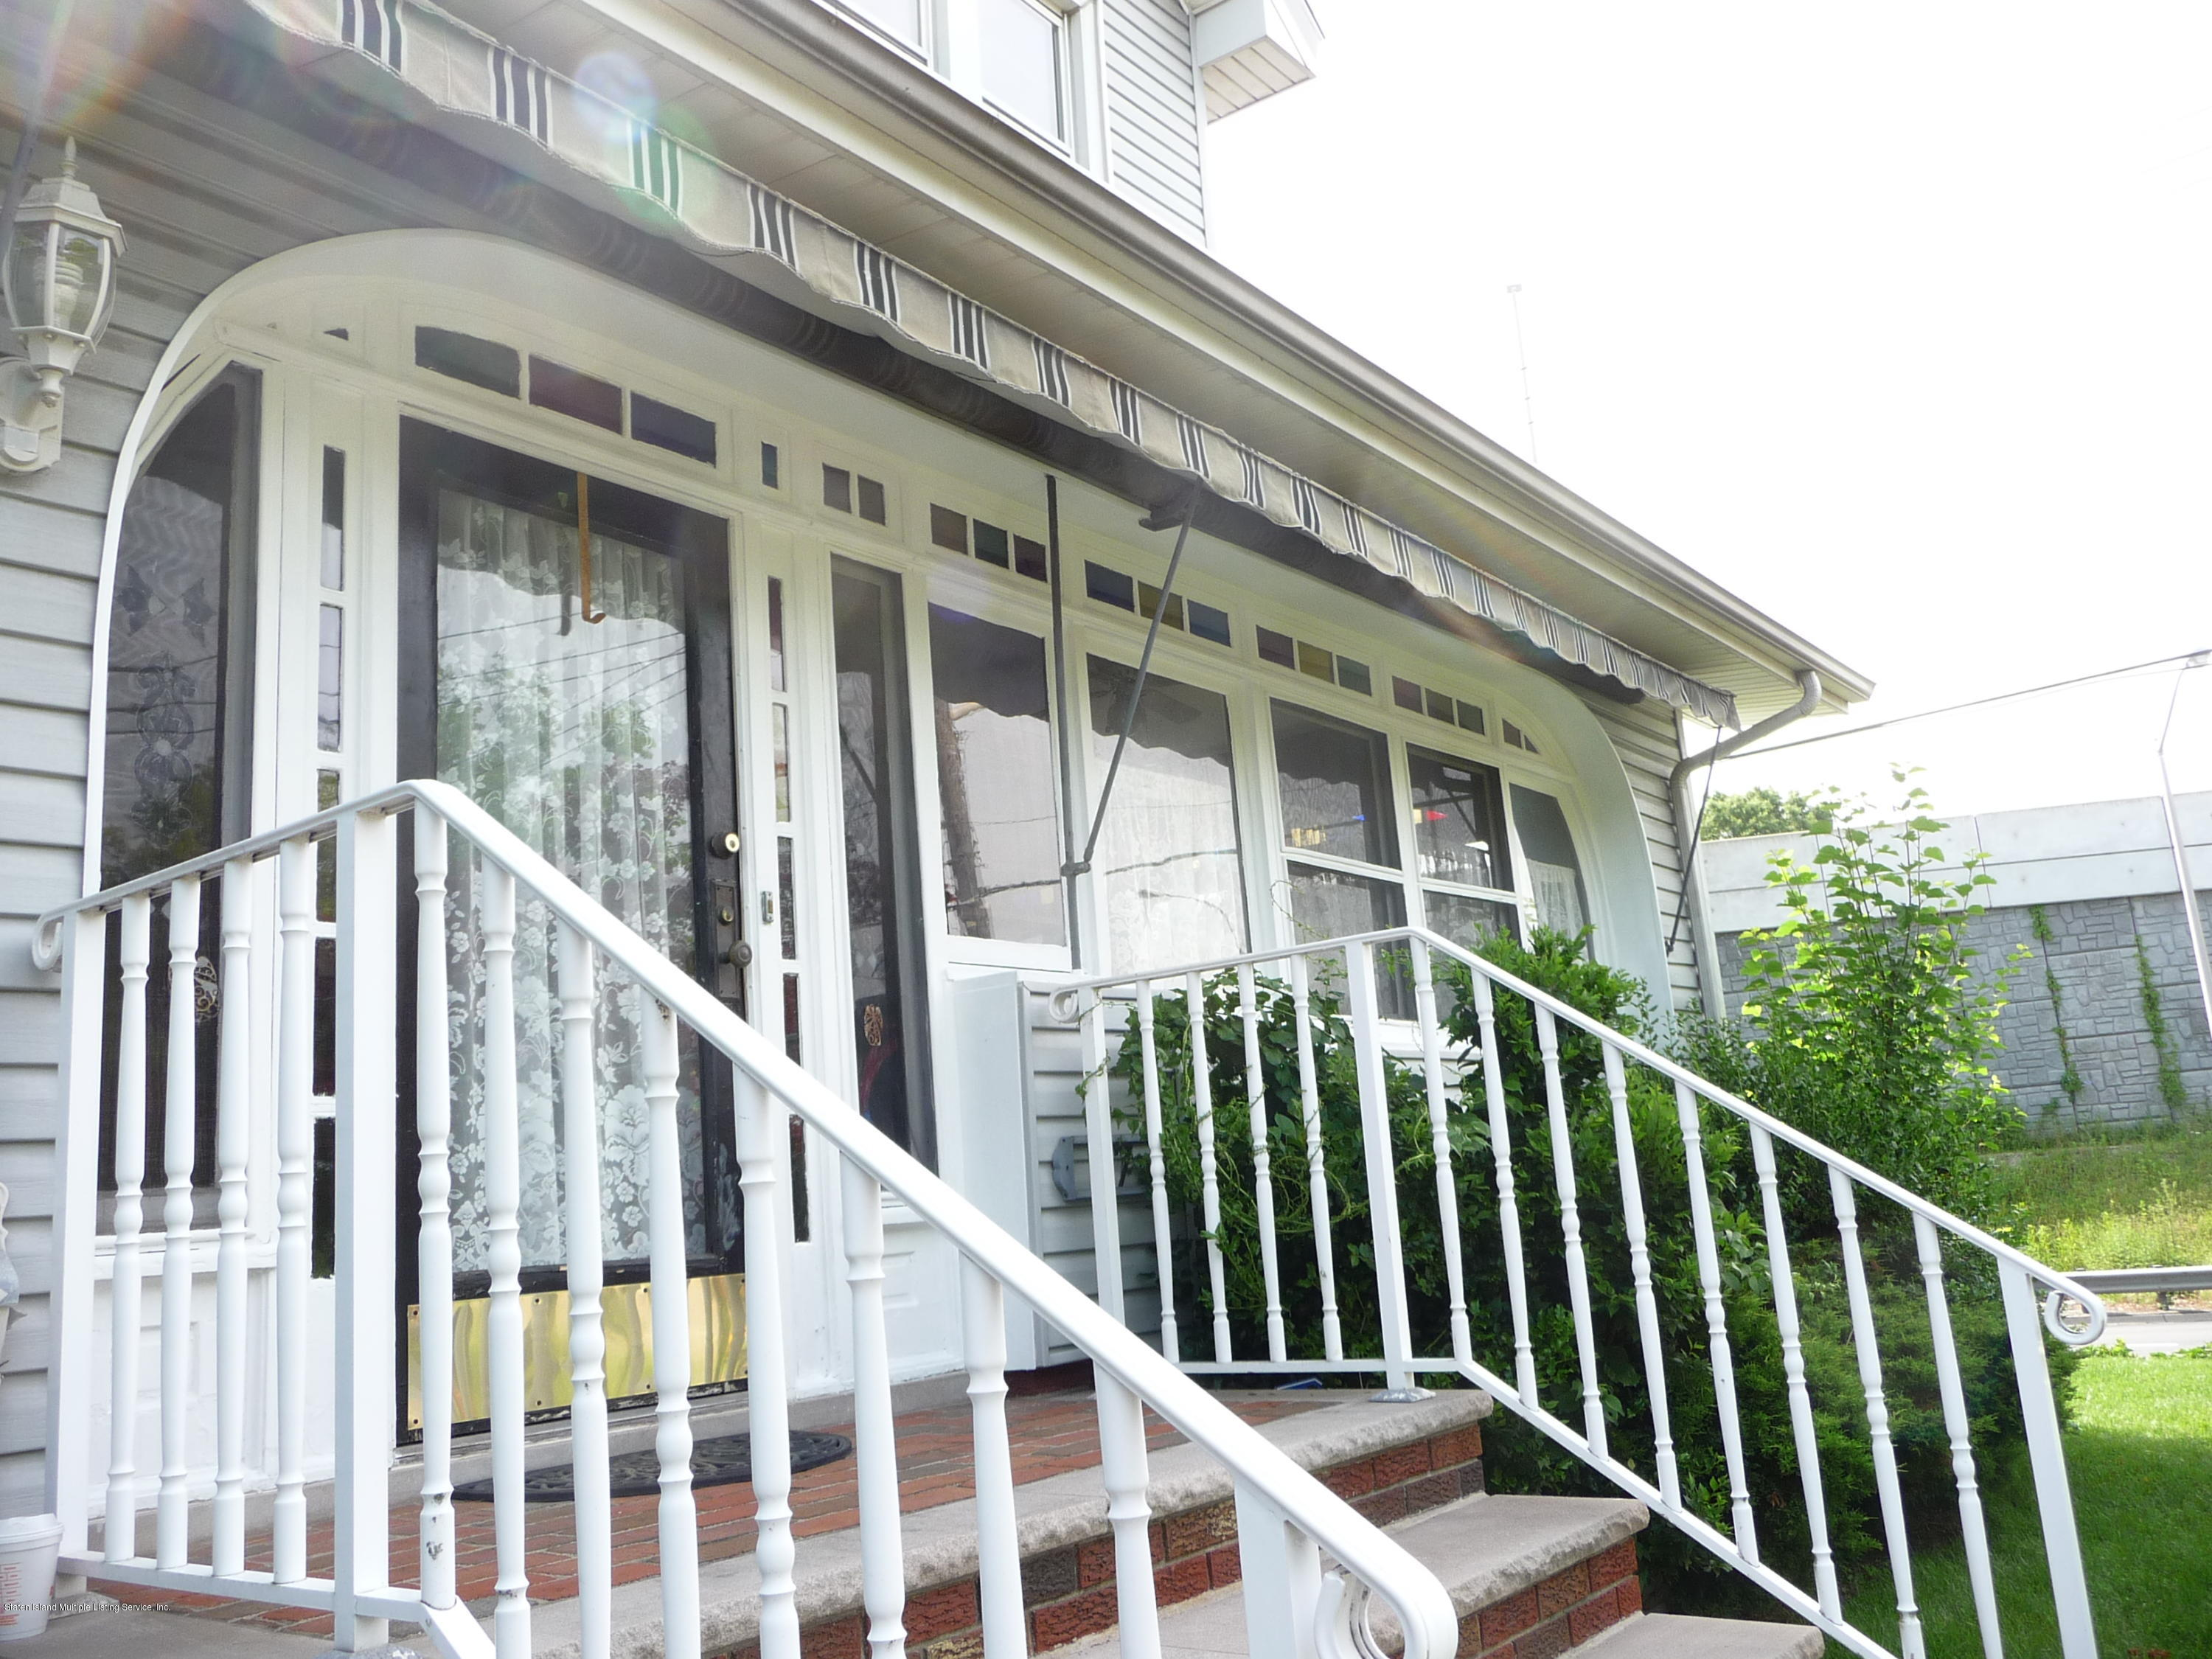 Single Family - Detached 77 Todt Hill Road  Staten Island, NY 10314, MLS-1129718-3